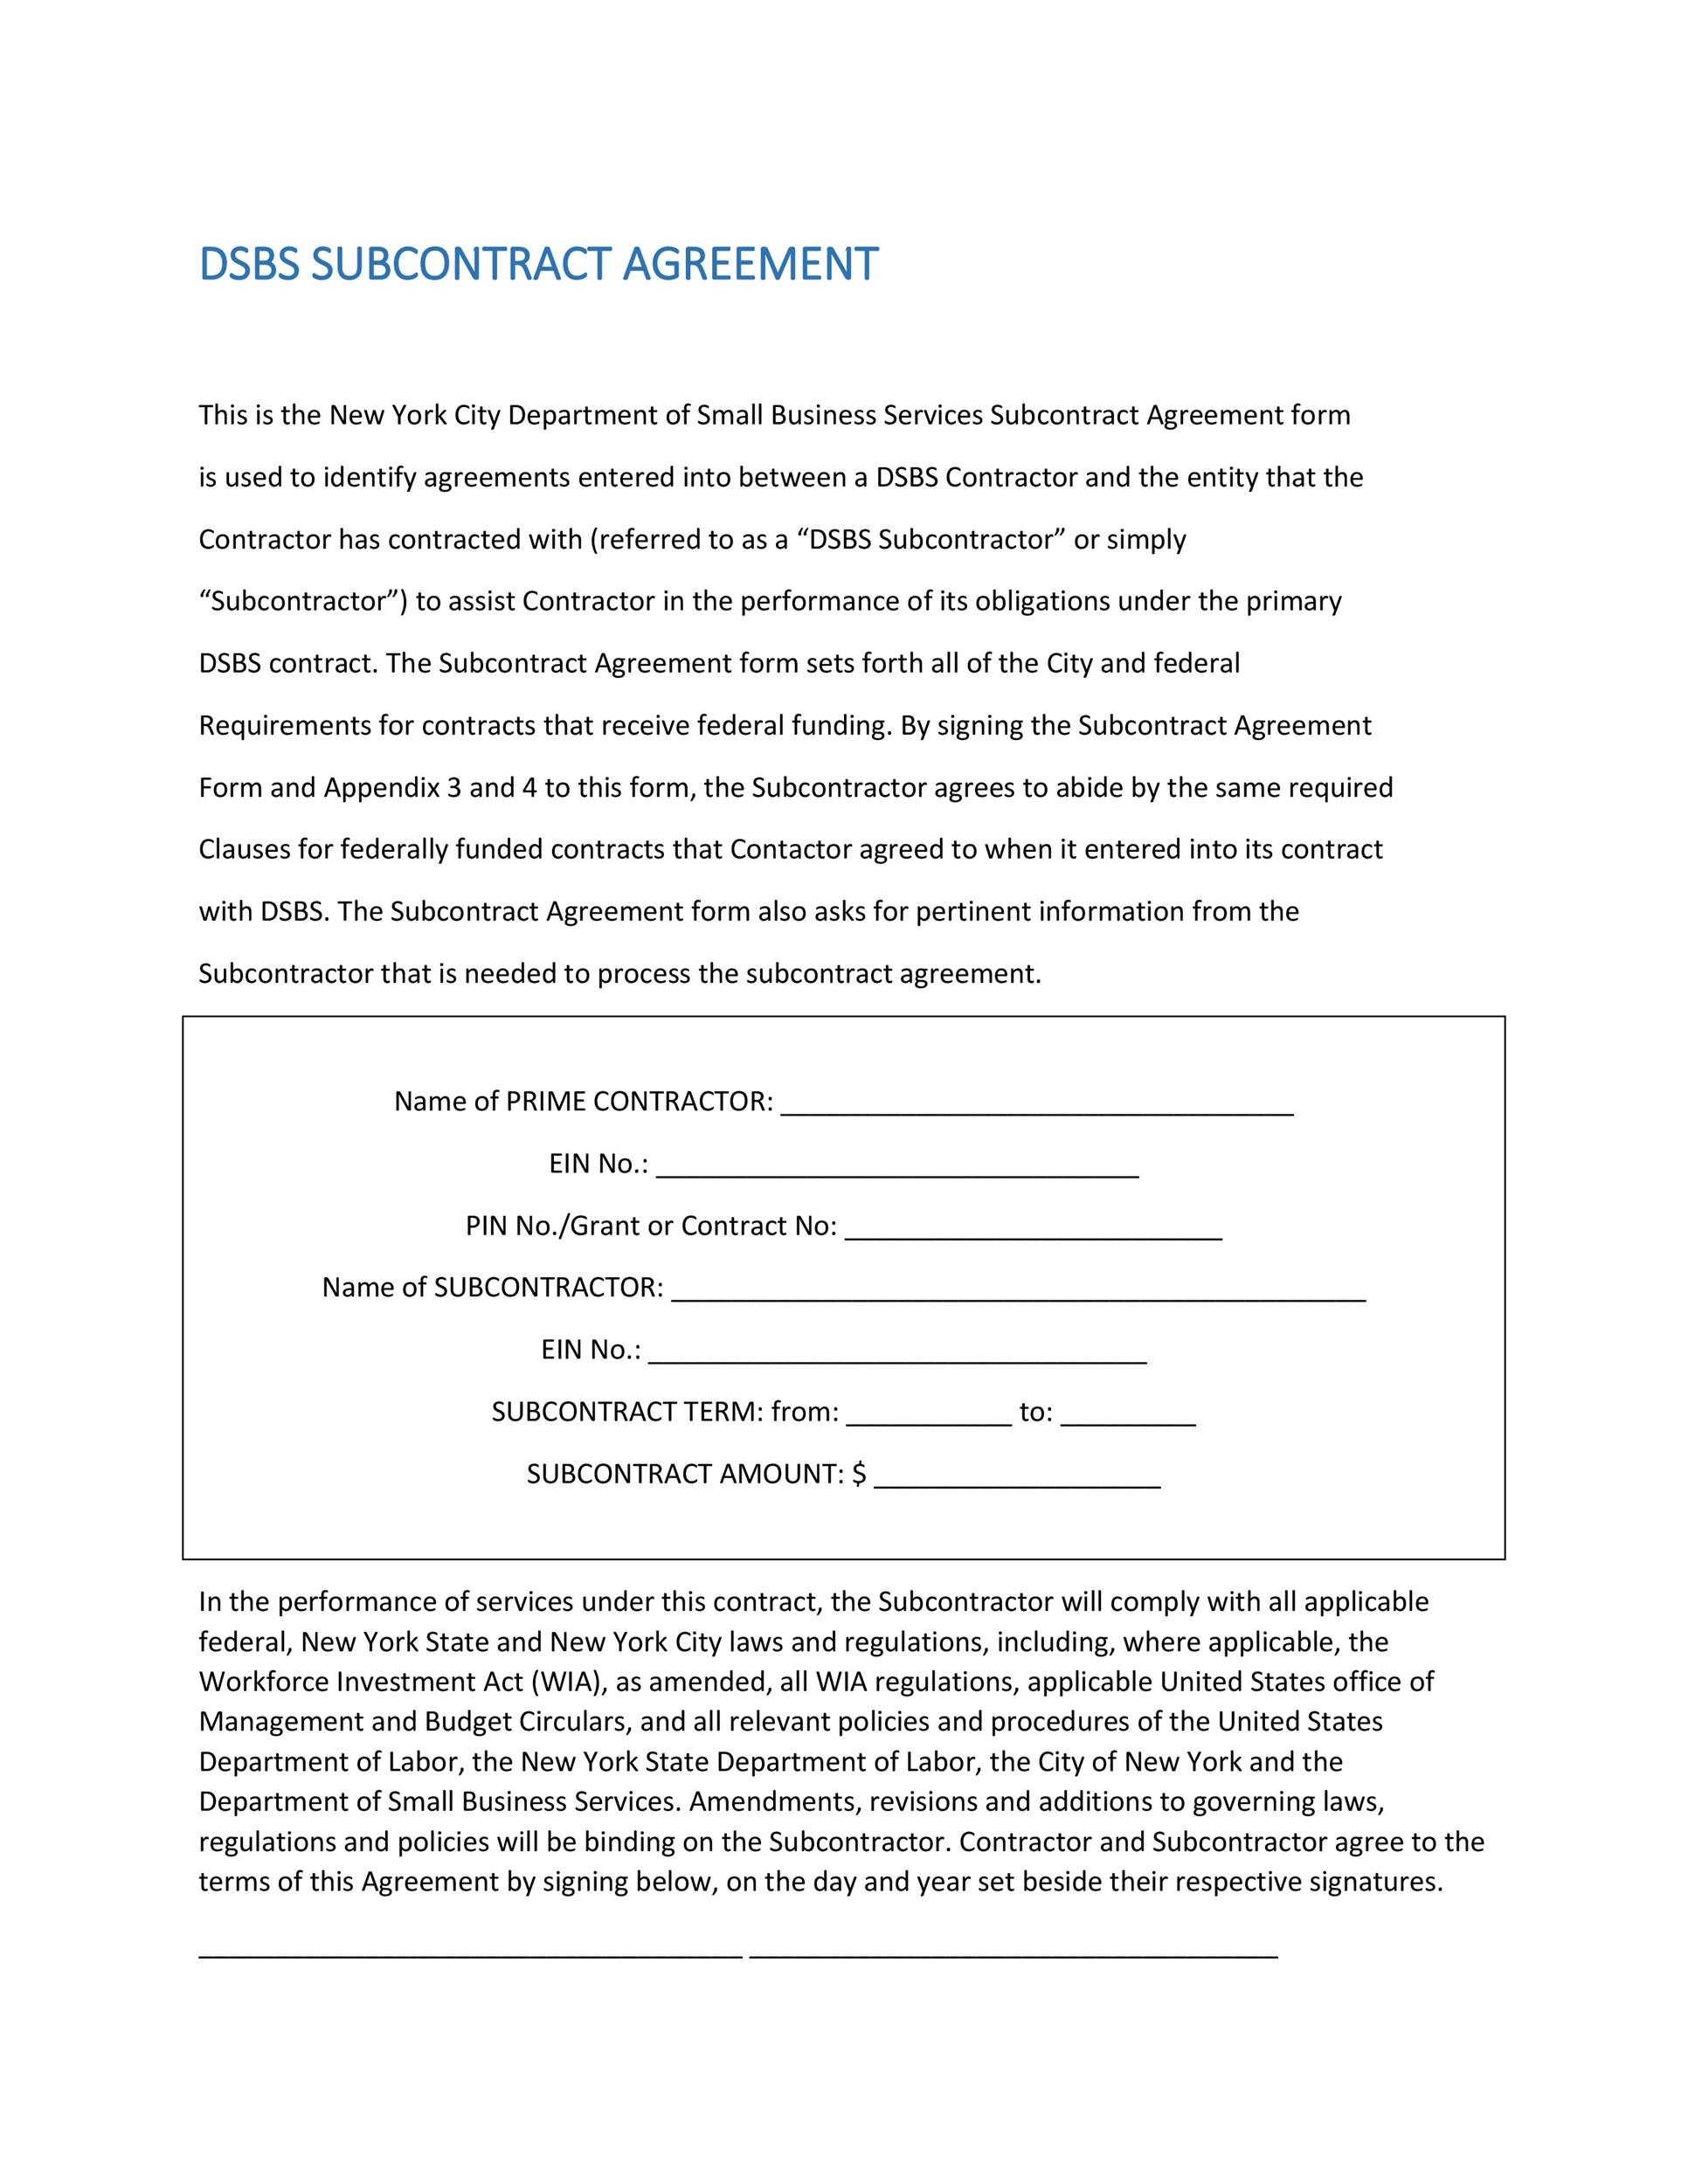 cda agreement template - need a subcontractor agreement 39 free templates here